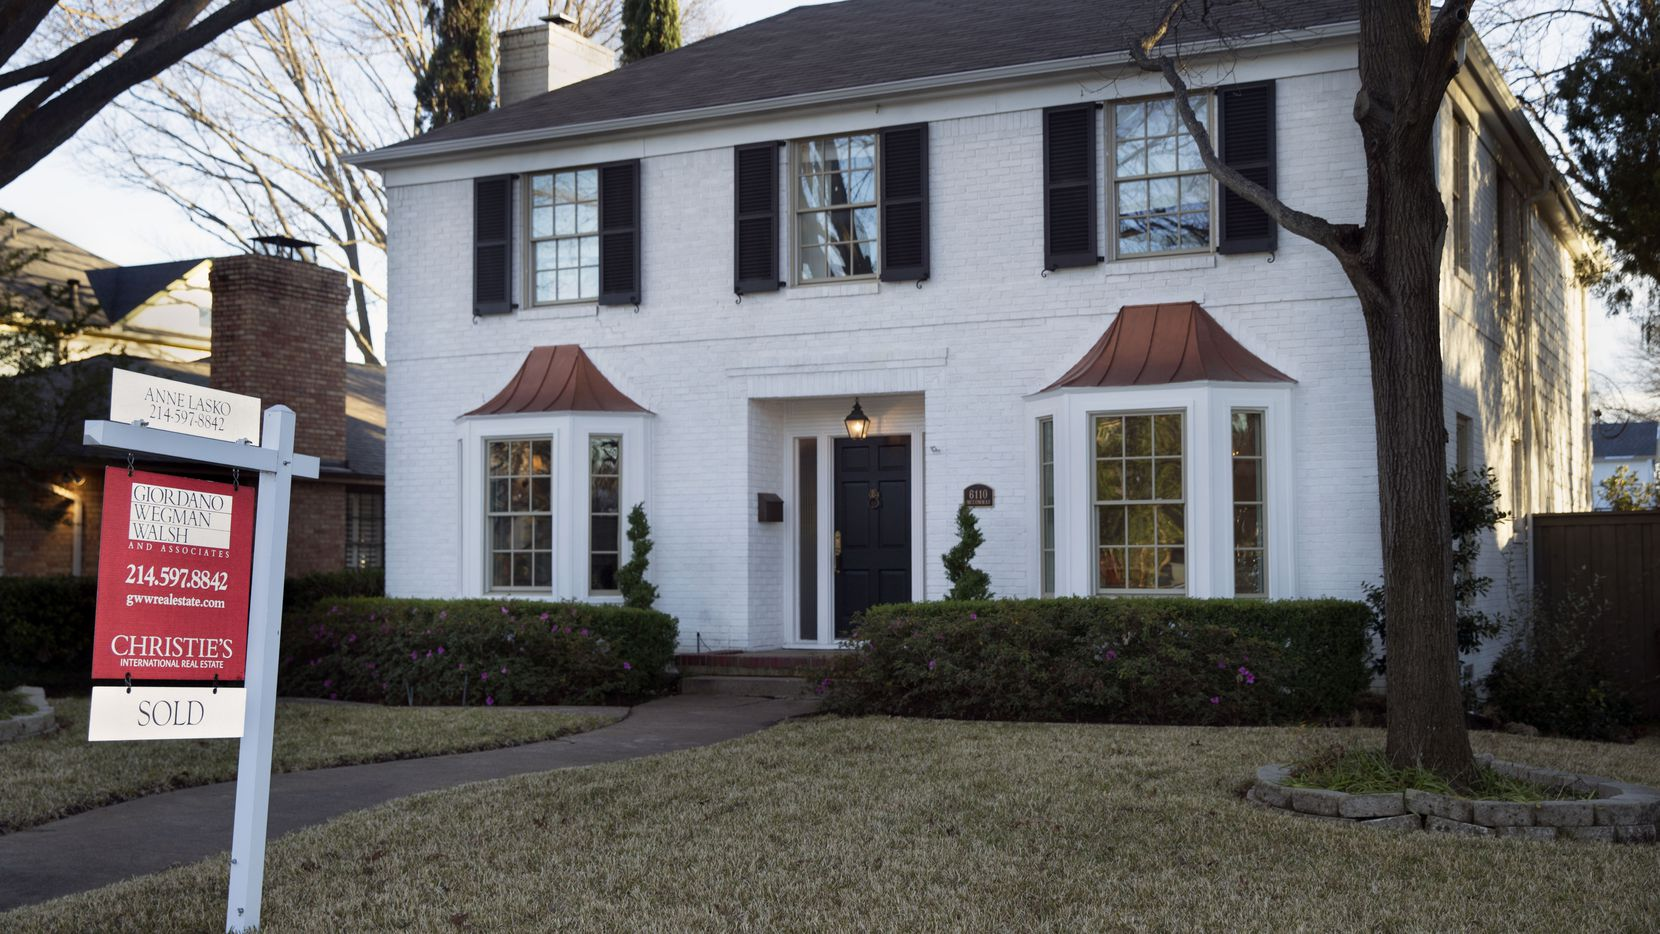 Dallas-area home prices are up 70% since 2009.